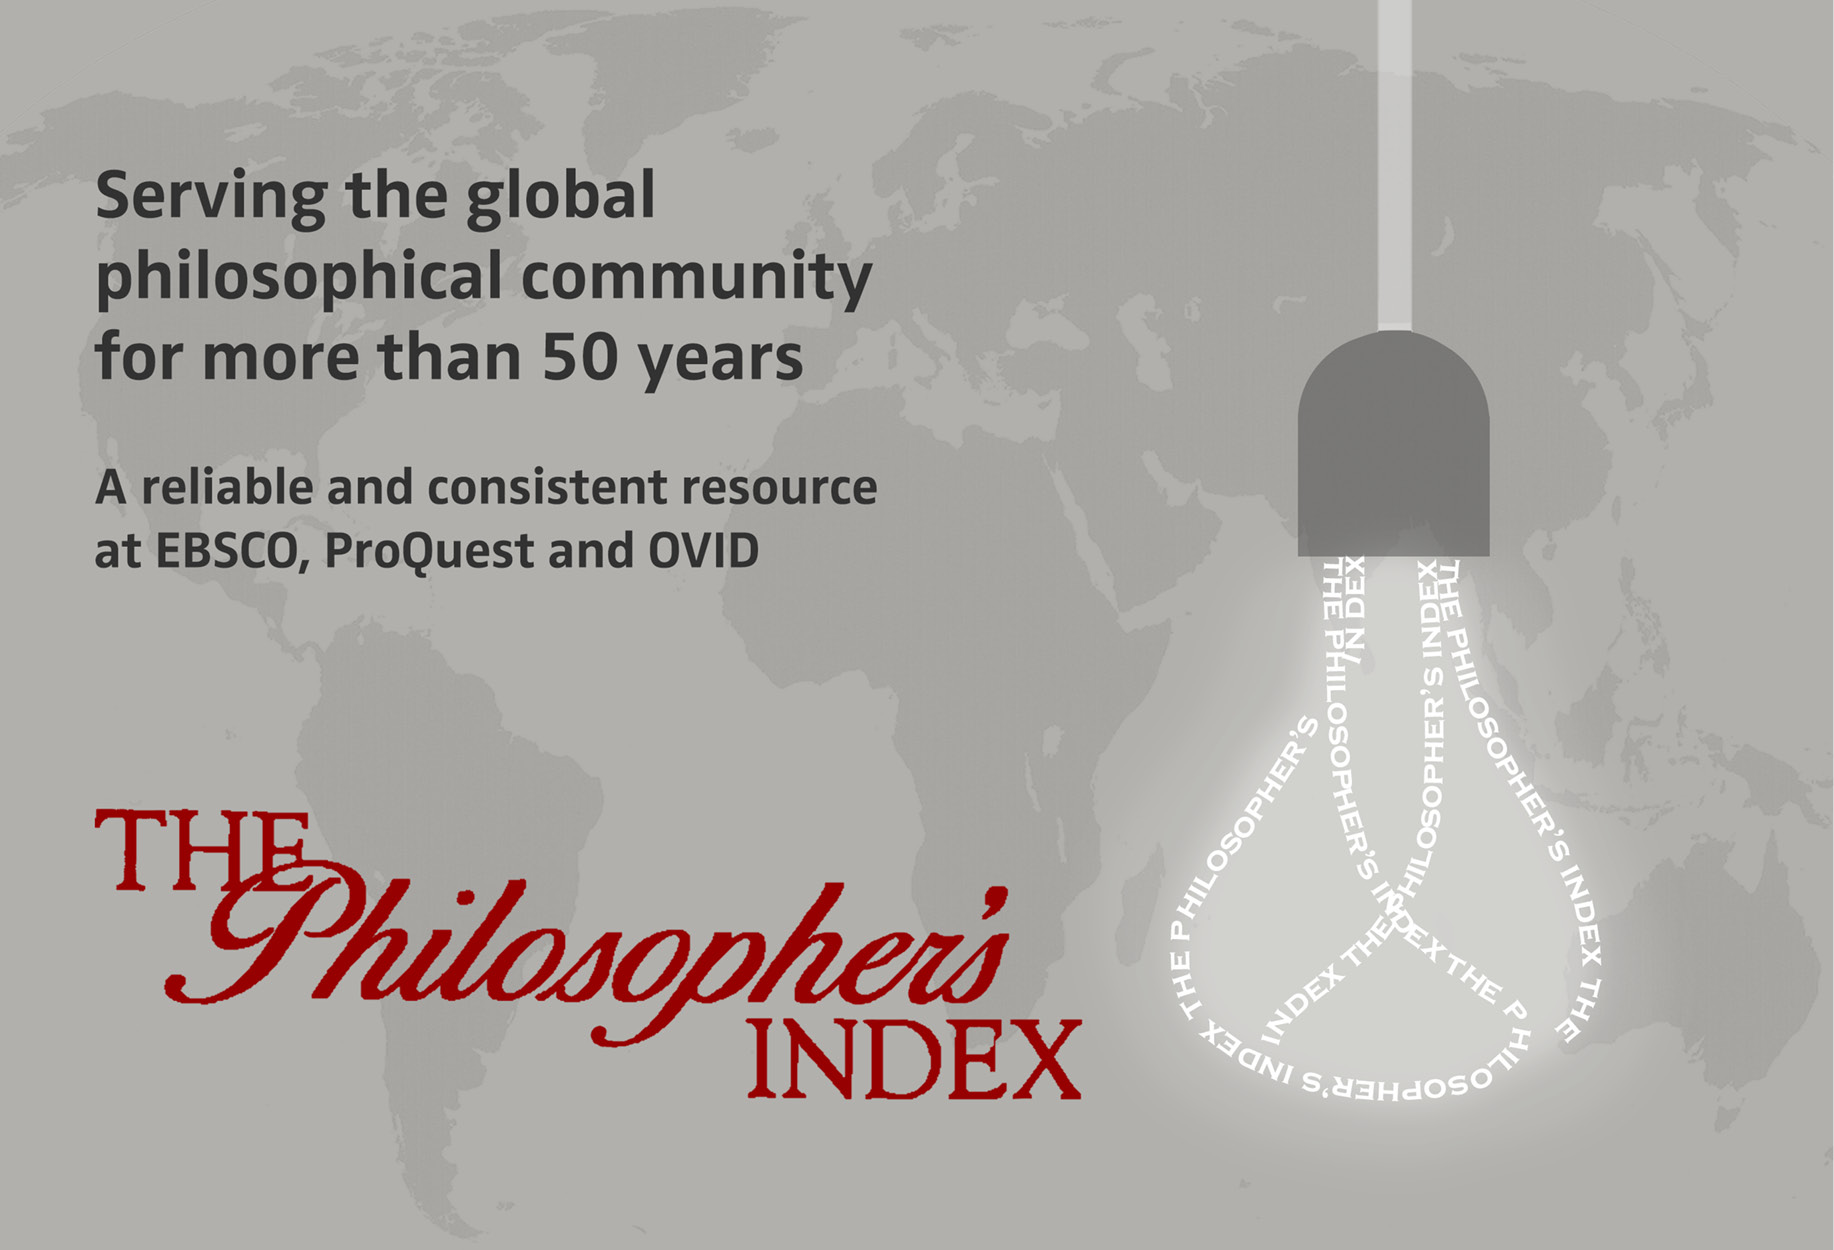 The Philosopher's Index. Serving the global philosophical community for more than 50 years. A reliable and consistent resource at EBSCO, ProQuest aond OVID.